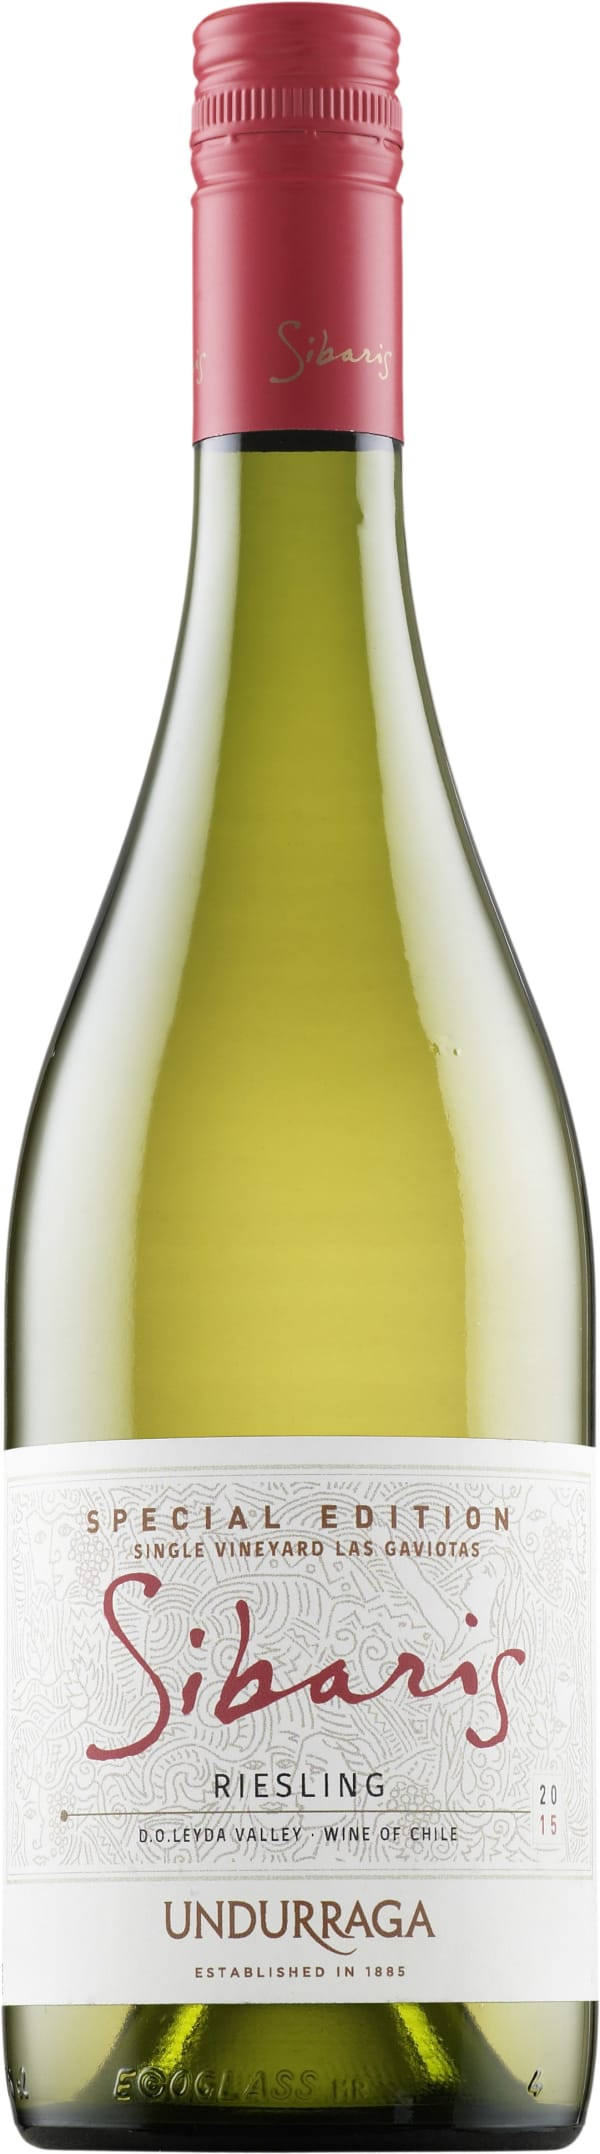 Sibaris Special Edition Single Vineyard Las Gaviotas Riesling 2016